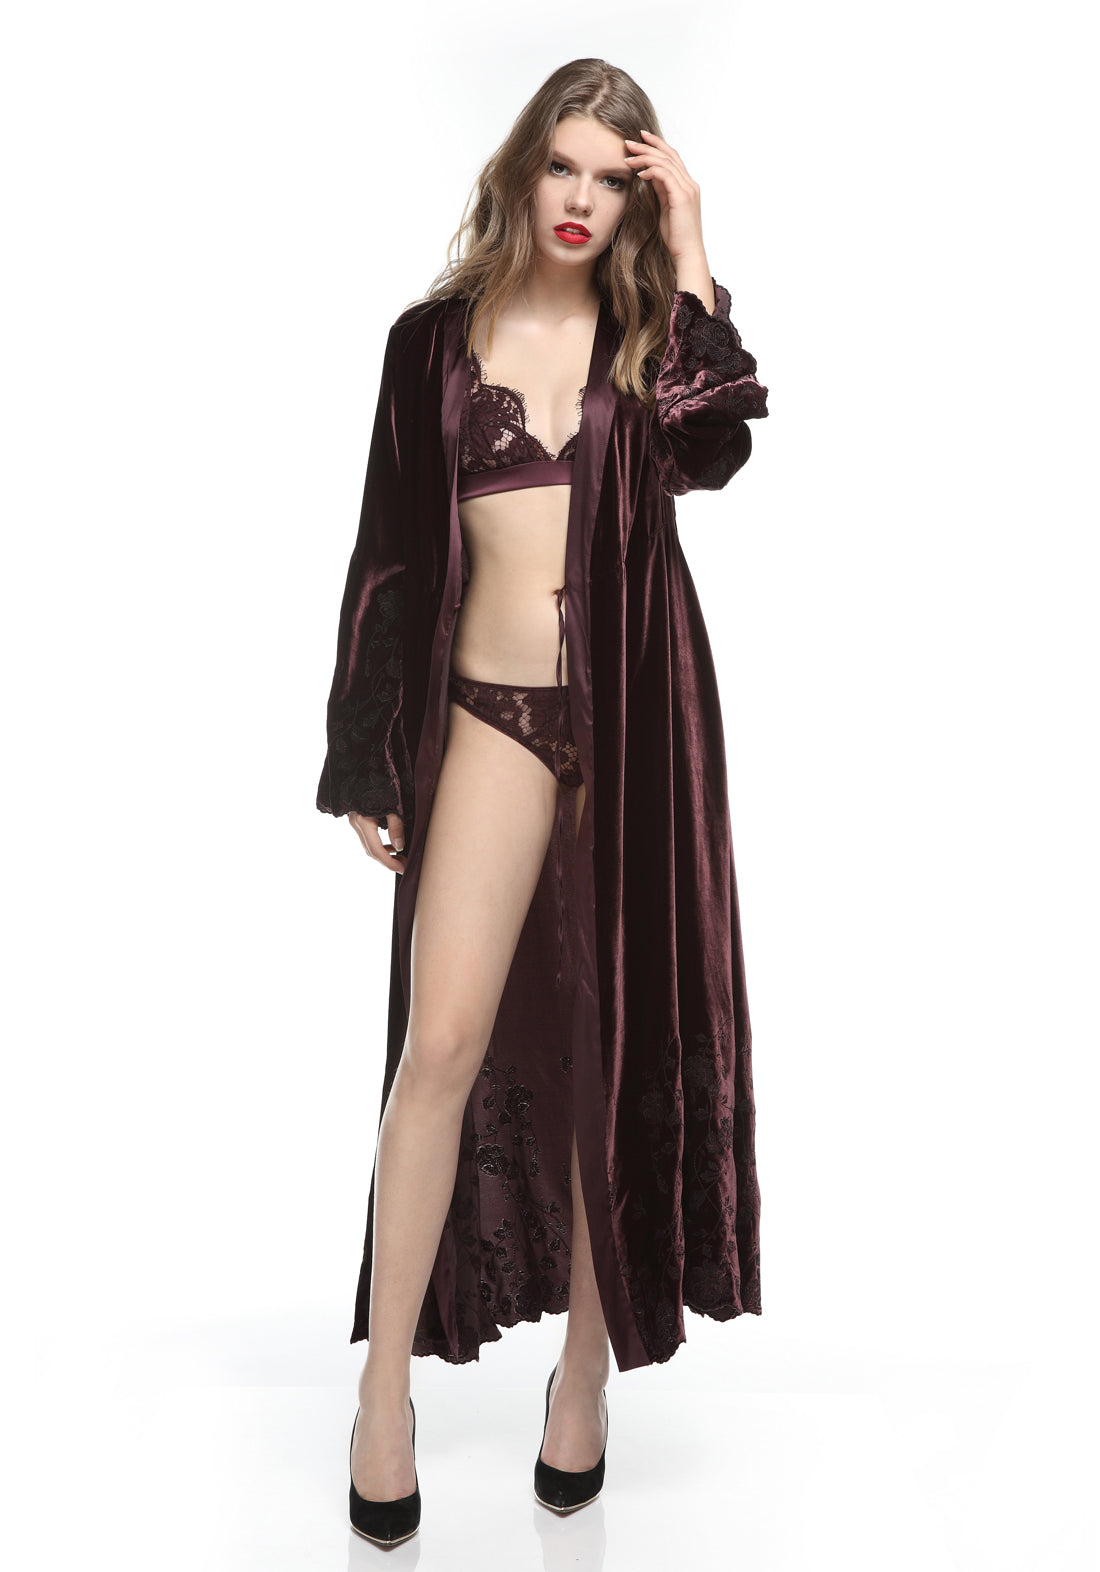 Nuits a Moscou Long Robe in Royal Berry